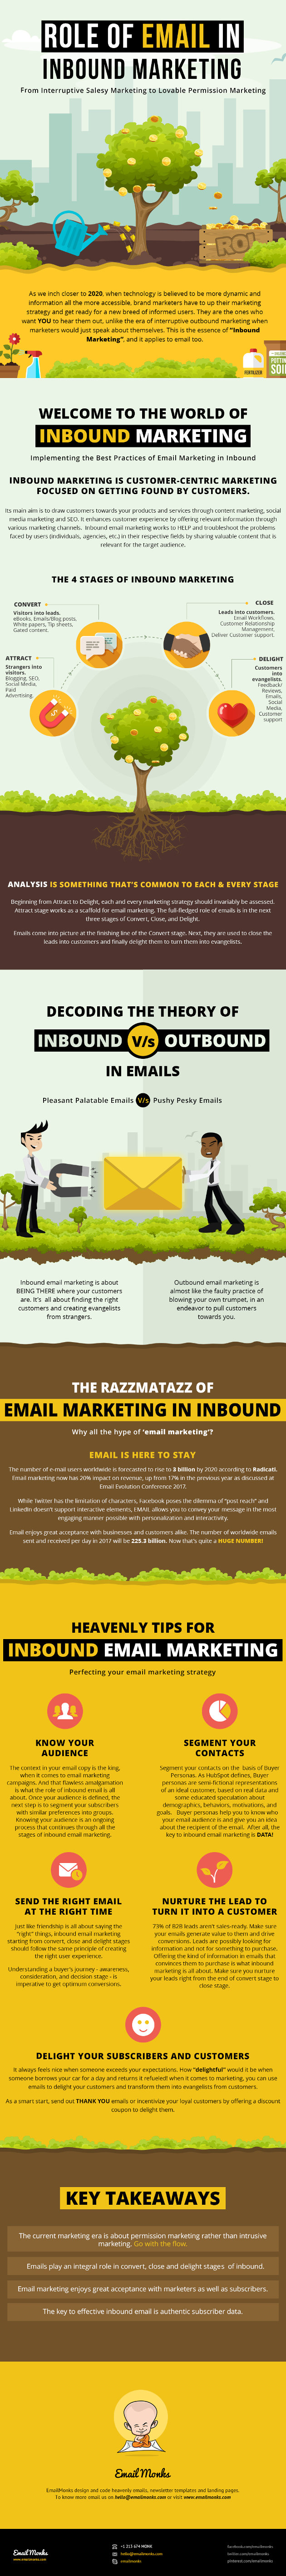 Inbound Marketing And The Role Of Email On It [Infographic]